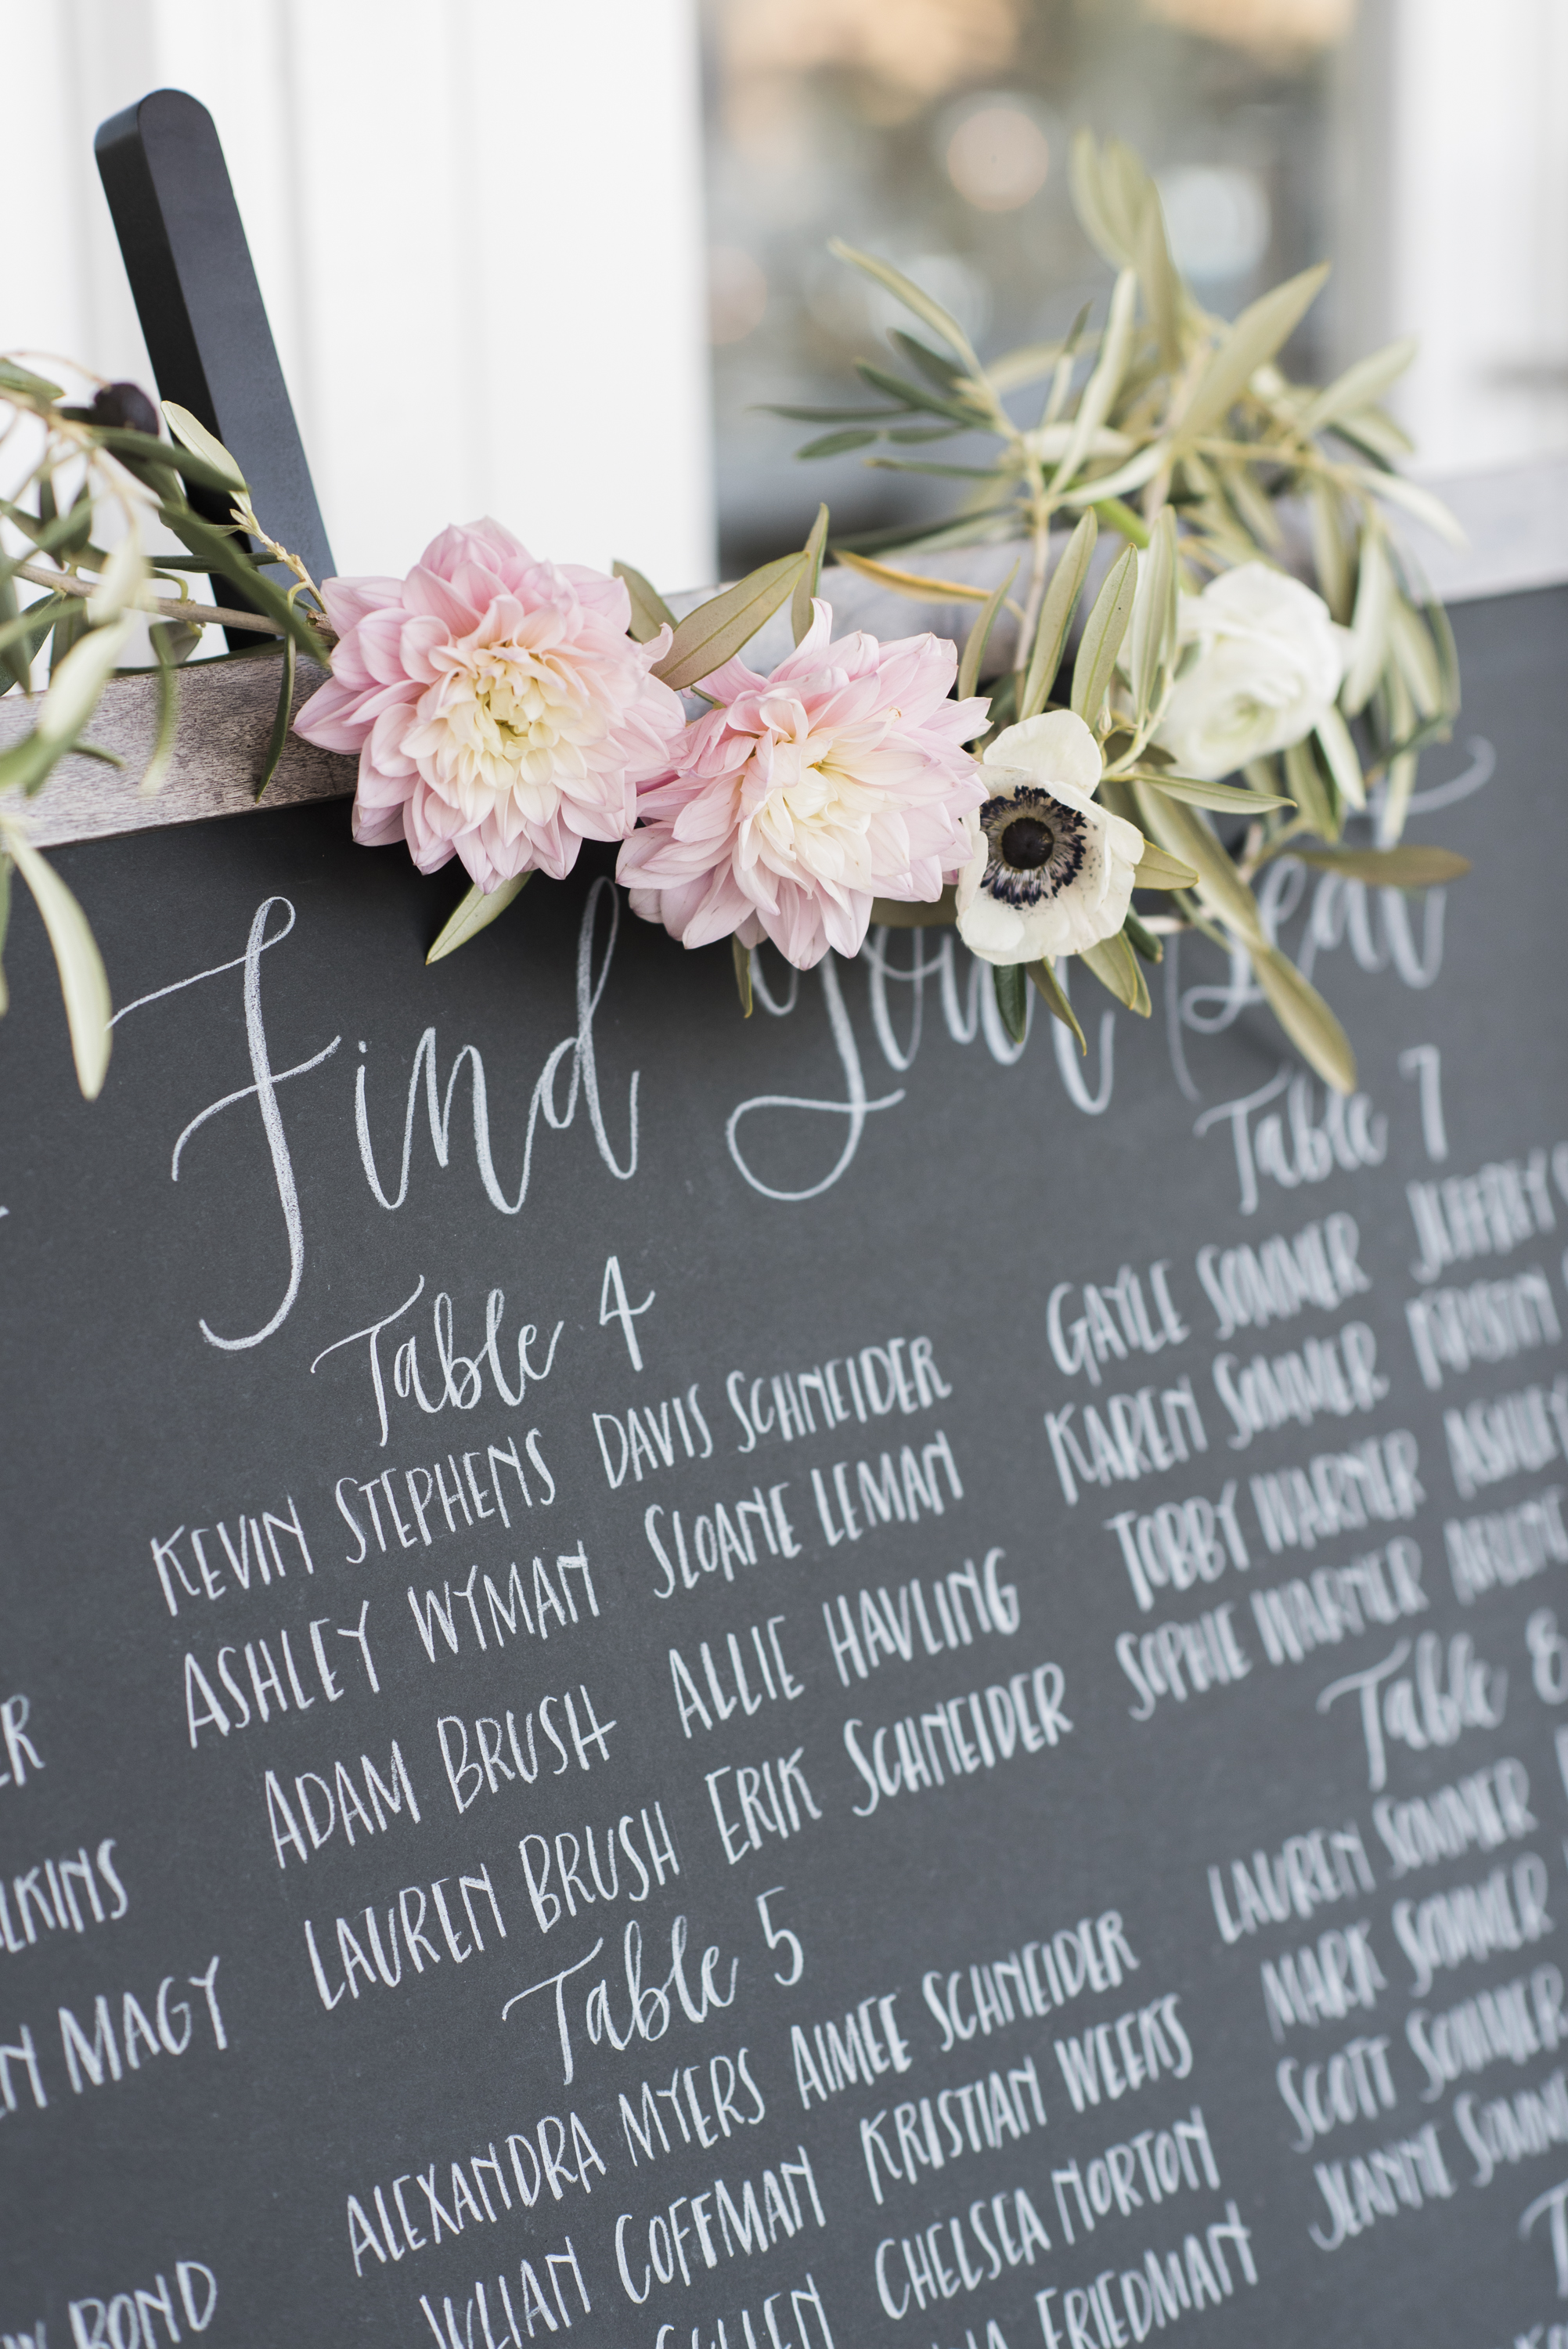 CUSTOM SEATING CHART ON CHALKBOARD | PHOTOGRAPHY  CAITLIN O'REILLY PHOTOGRAPHY